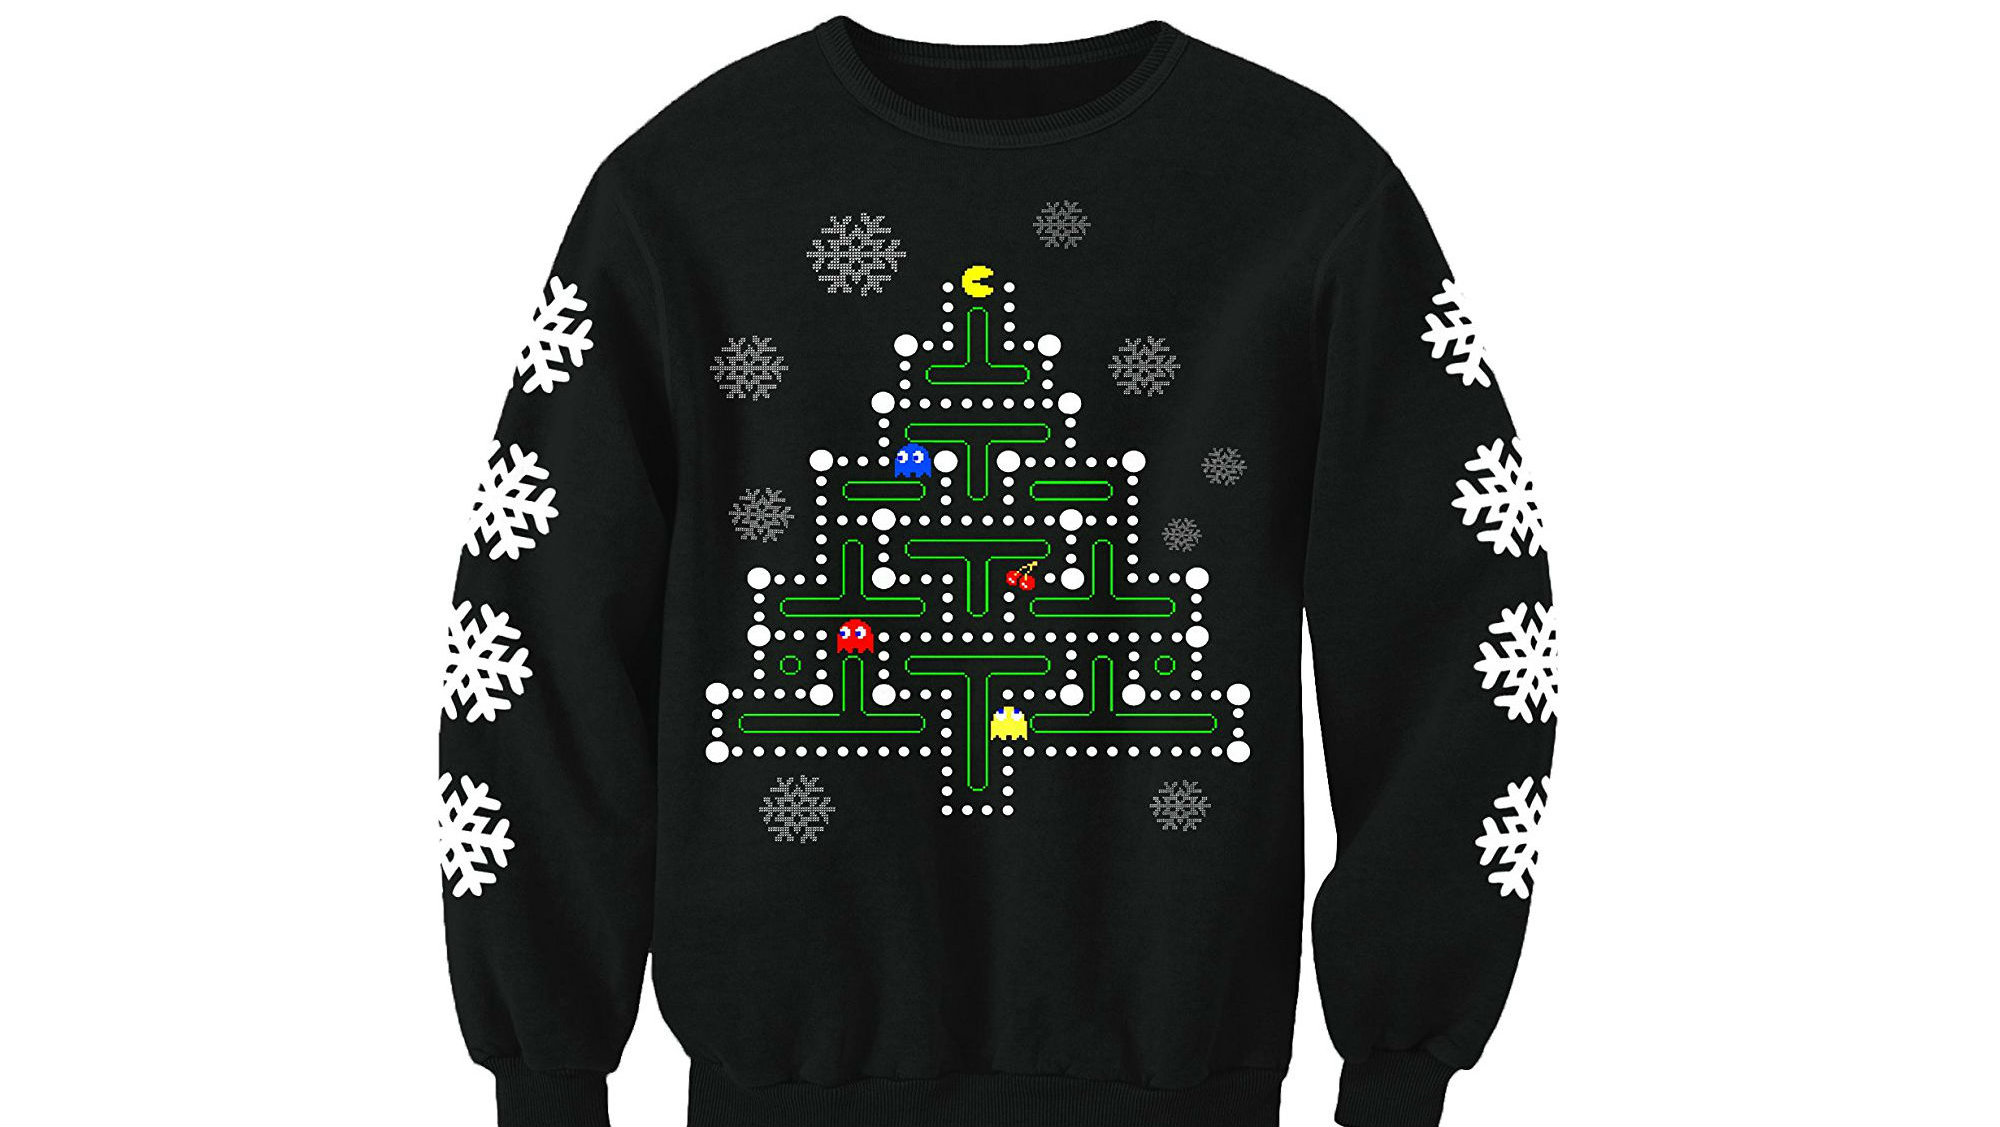 Any retro loving pac man fans out there? If so then why not mix pleasure with Christmas and get this beauty of a jumper for just £19.99.  https://www.amazon.co.uk/Christmas-Inspired-Novelty-Printed-Sweatshirt/dp/B01M9FYLNT